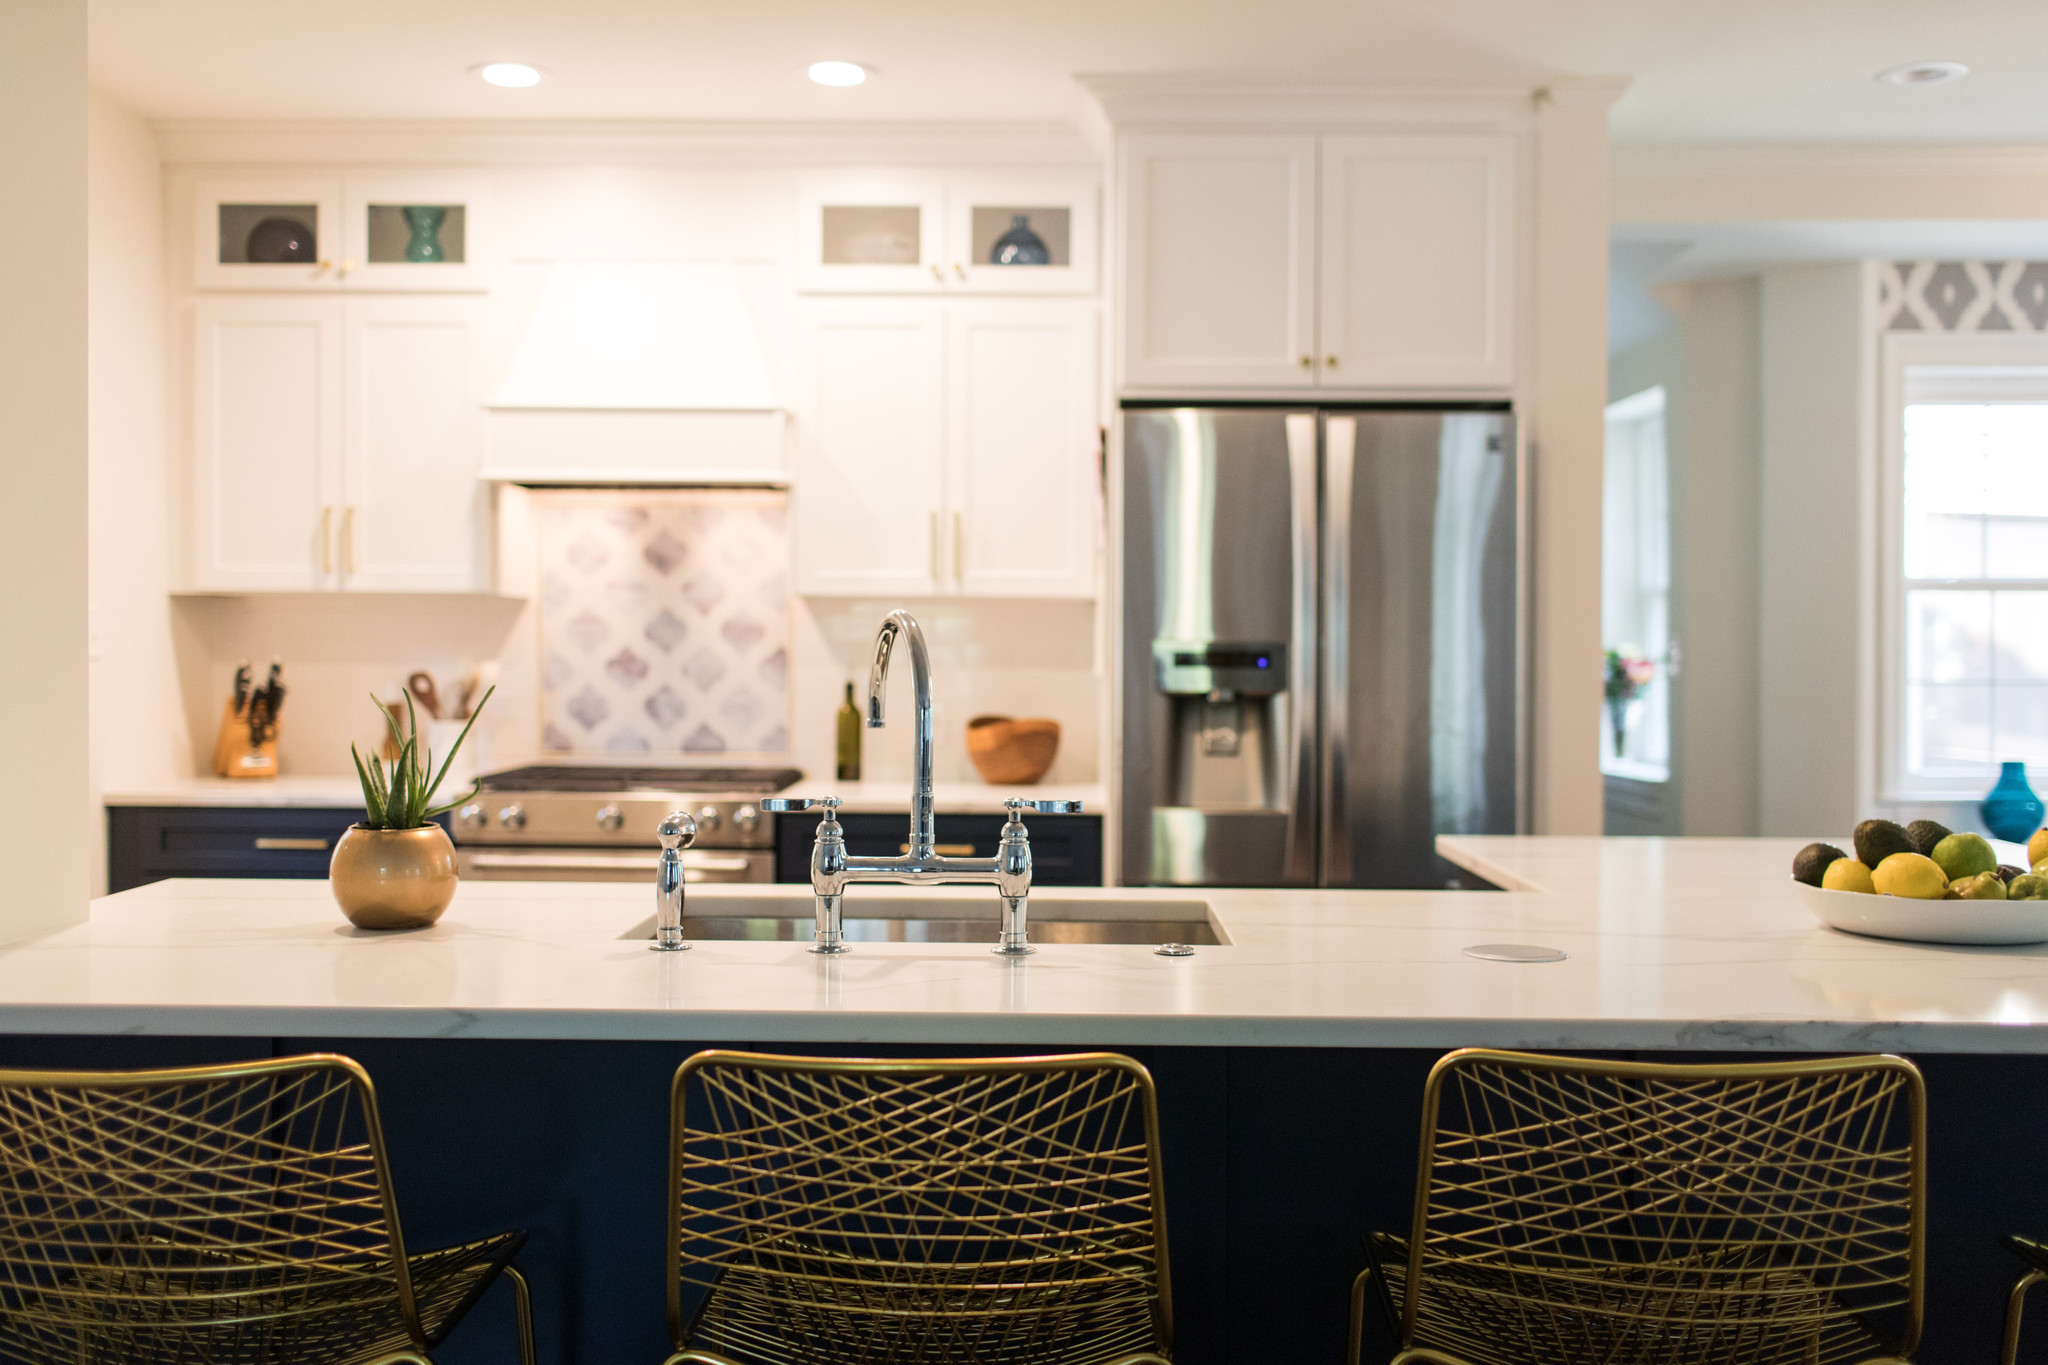 5 hot kitchen design trends in the baltimore area baltimore sun - Kitchen design baltimore ...